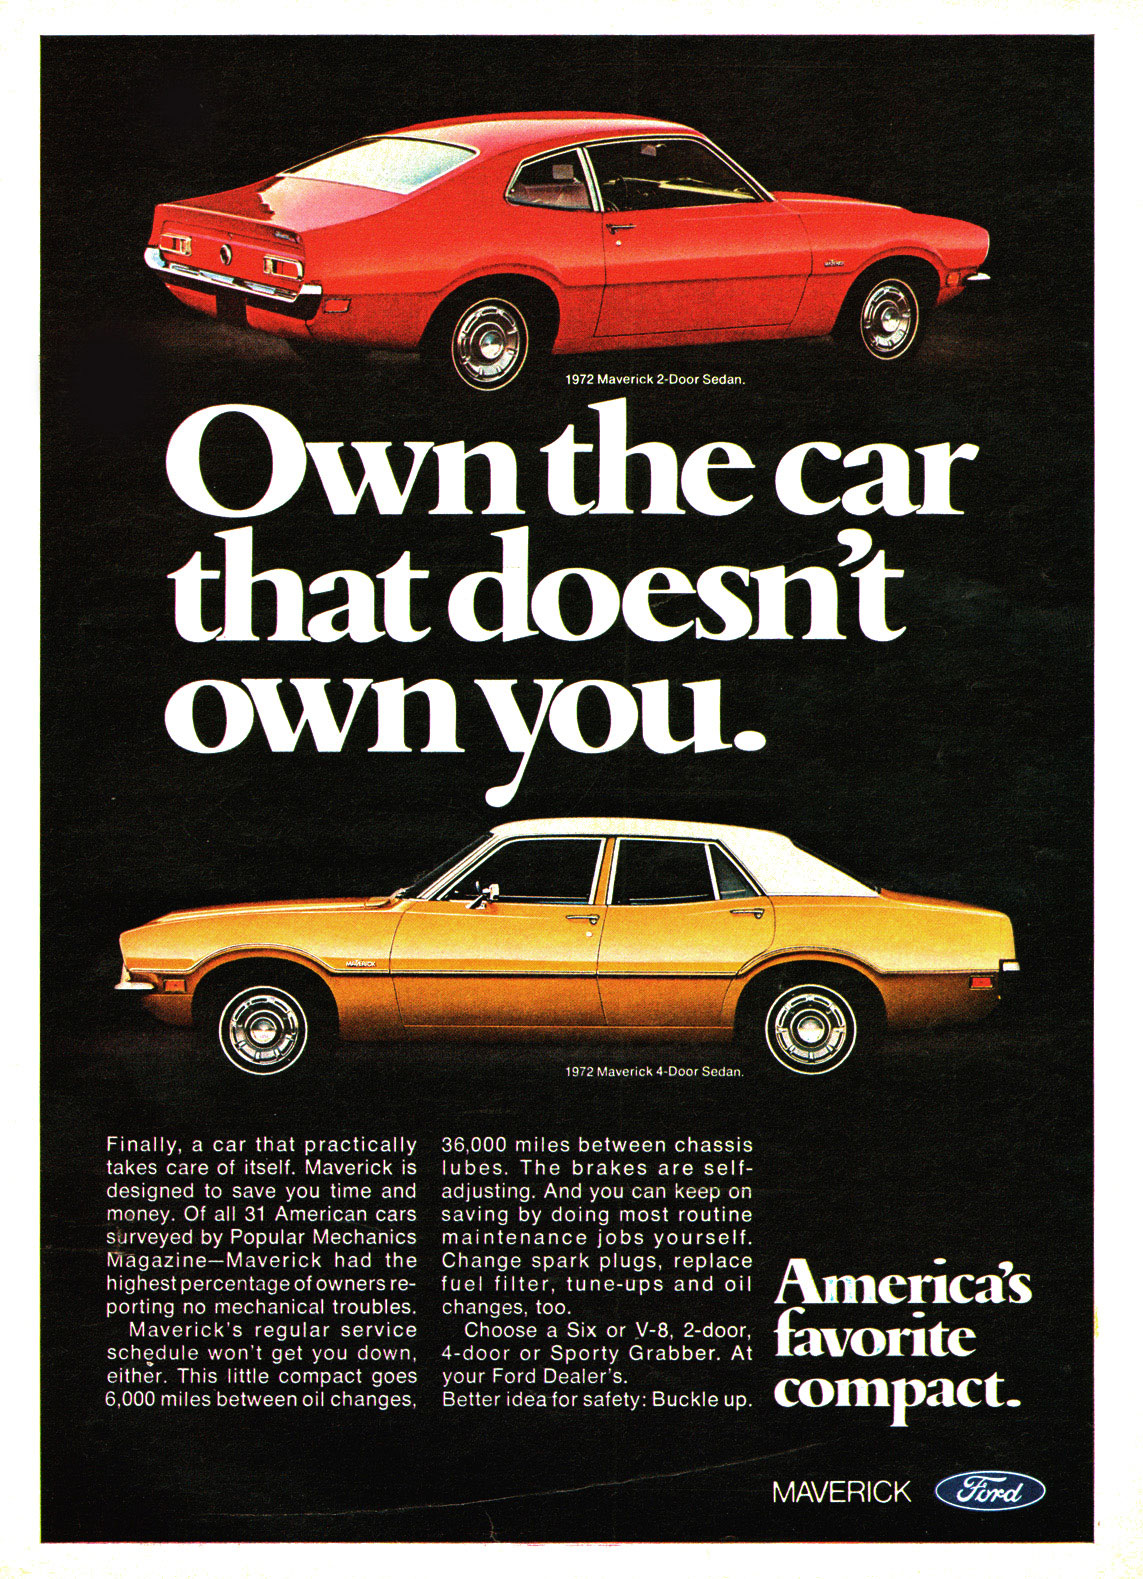 -.1-19rmr-OF-74070:47-717:  1972 Maverick 2-Door Sedan.   Own the car that doesn't own you.   Finally, a car that practically takes care of itself. Maverick is designed to save you time and money. Of all 31 American cars surveyed by Popular Mechanics Magazine—Maverick had the highest percentage of owners re-porting no mechanical troubles. Maverick's regular service schedule won't get you down, either. This little compact goes 6,000 miles between oil changes.  1972 Maverick 4-Door Sedan.   36,000 miles between chassis lubes. The brakes are self-adjusting. And you can keep on saving by doing most routine maintenance jobs yourself. Change spark plugs, replace fuel filter, tune-ups and oil changes, too. Choose a Six or V-8, 2-door, 4-door or Sporty Grabber. At your Ford Dealer's. Better idea for safety: Buckle up.  America's favorite compact  MAVERICK C(_. je